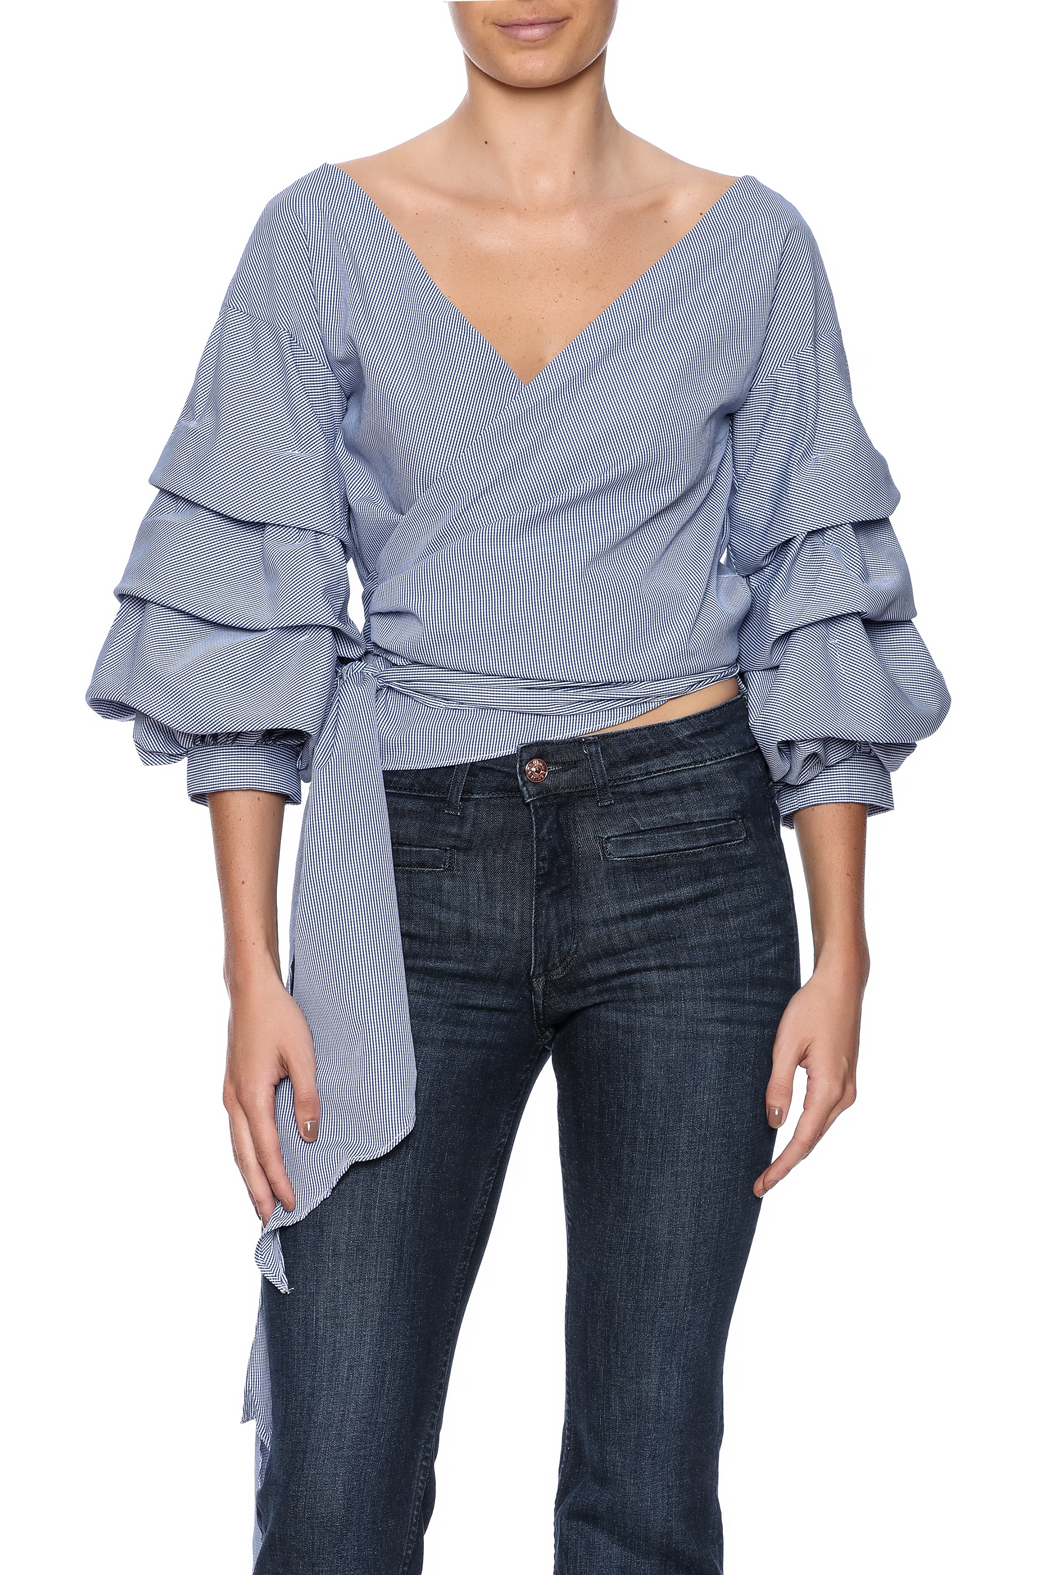 alpha & omega Ruffle Sleeve Top - Main Image